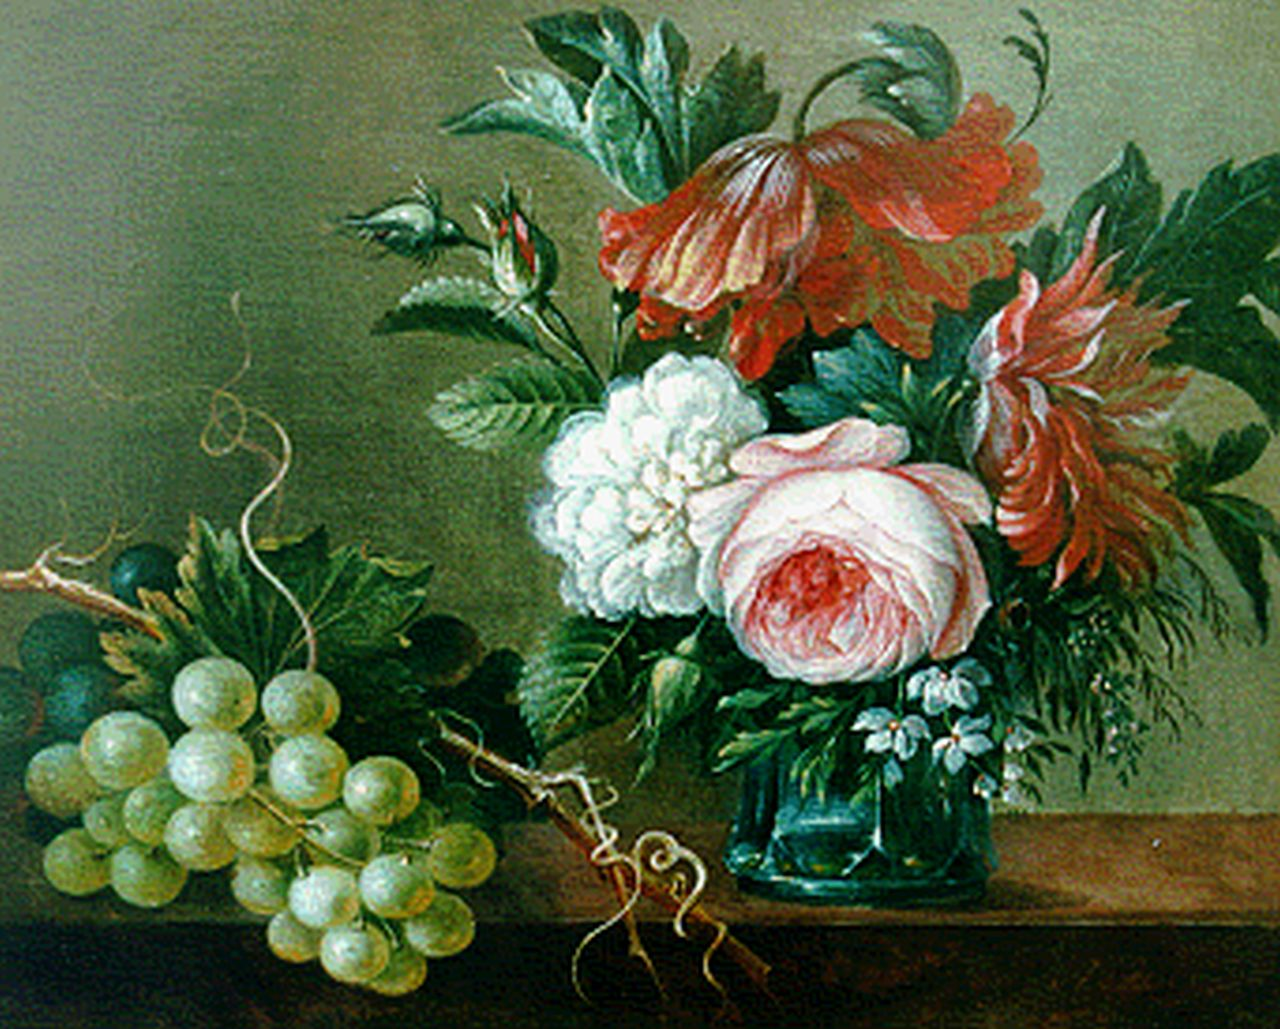 Apol A.  | Adrianus Apol, Still life with flowers and grapes, oil on panel 22.9 x 28.3 cm, signed l.r. and dated 1845